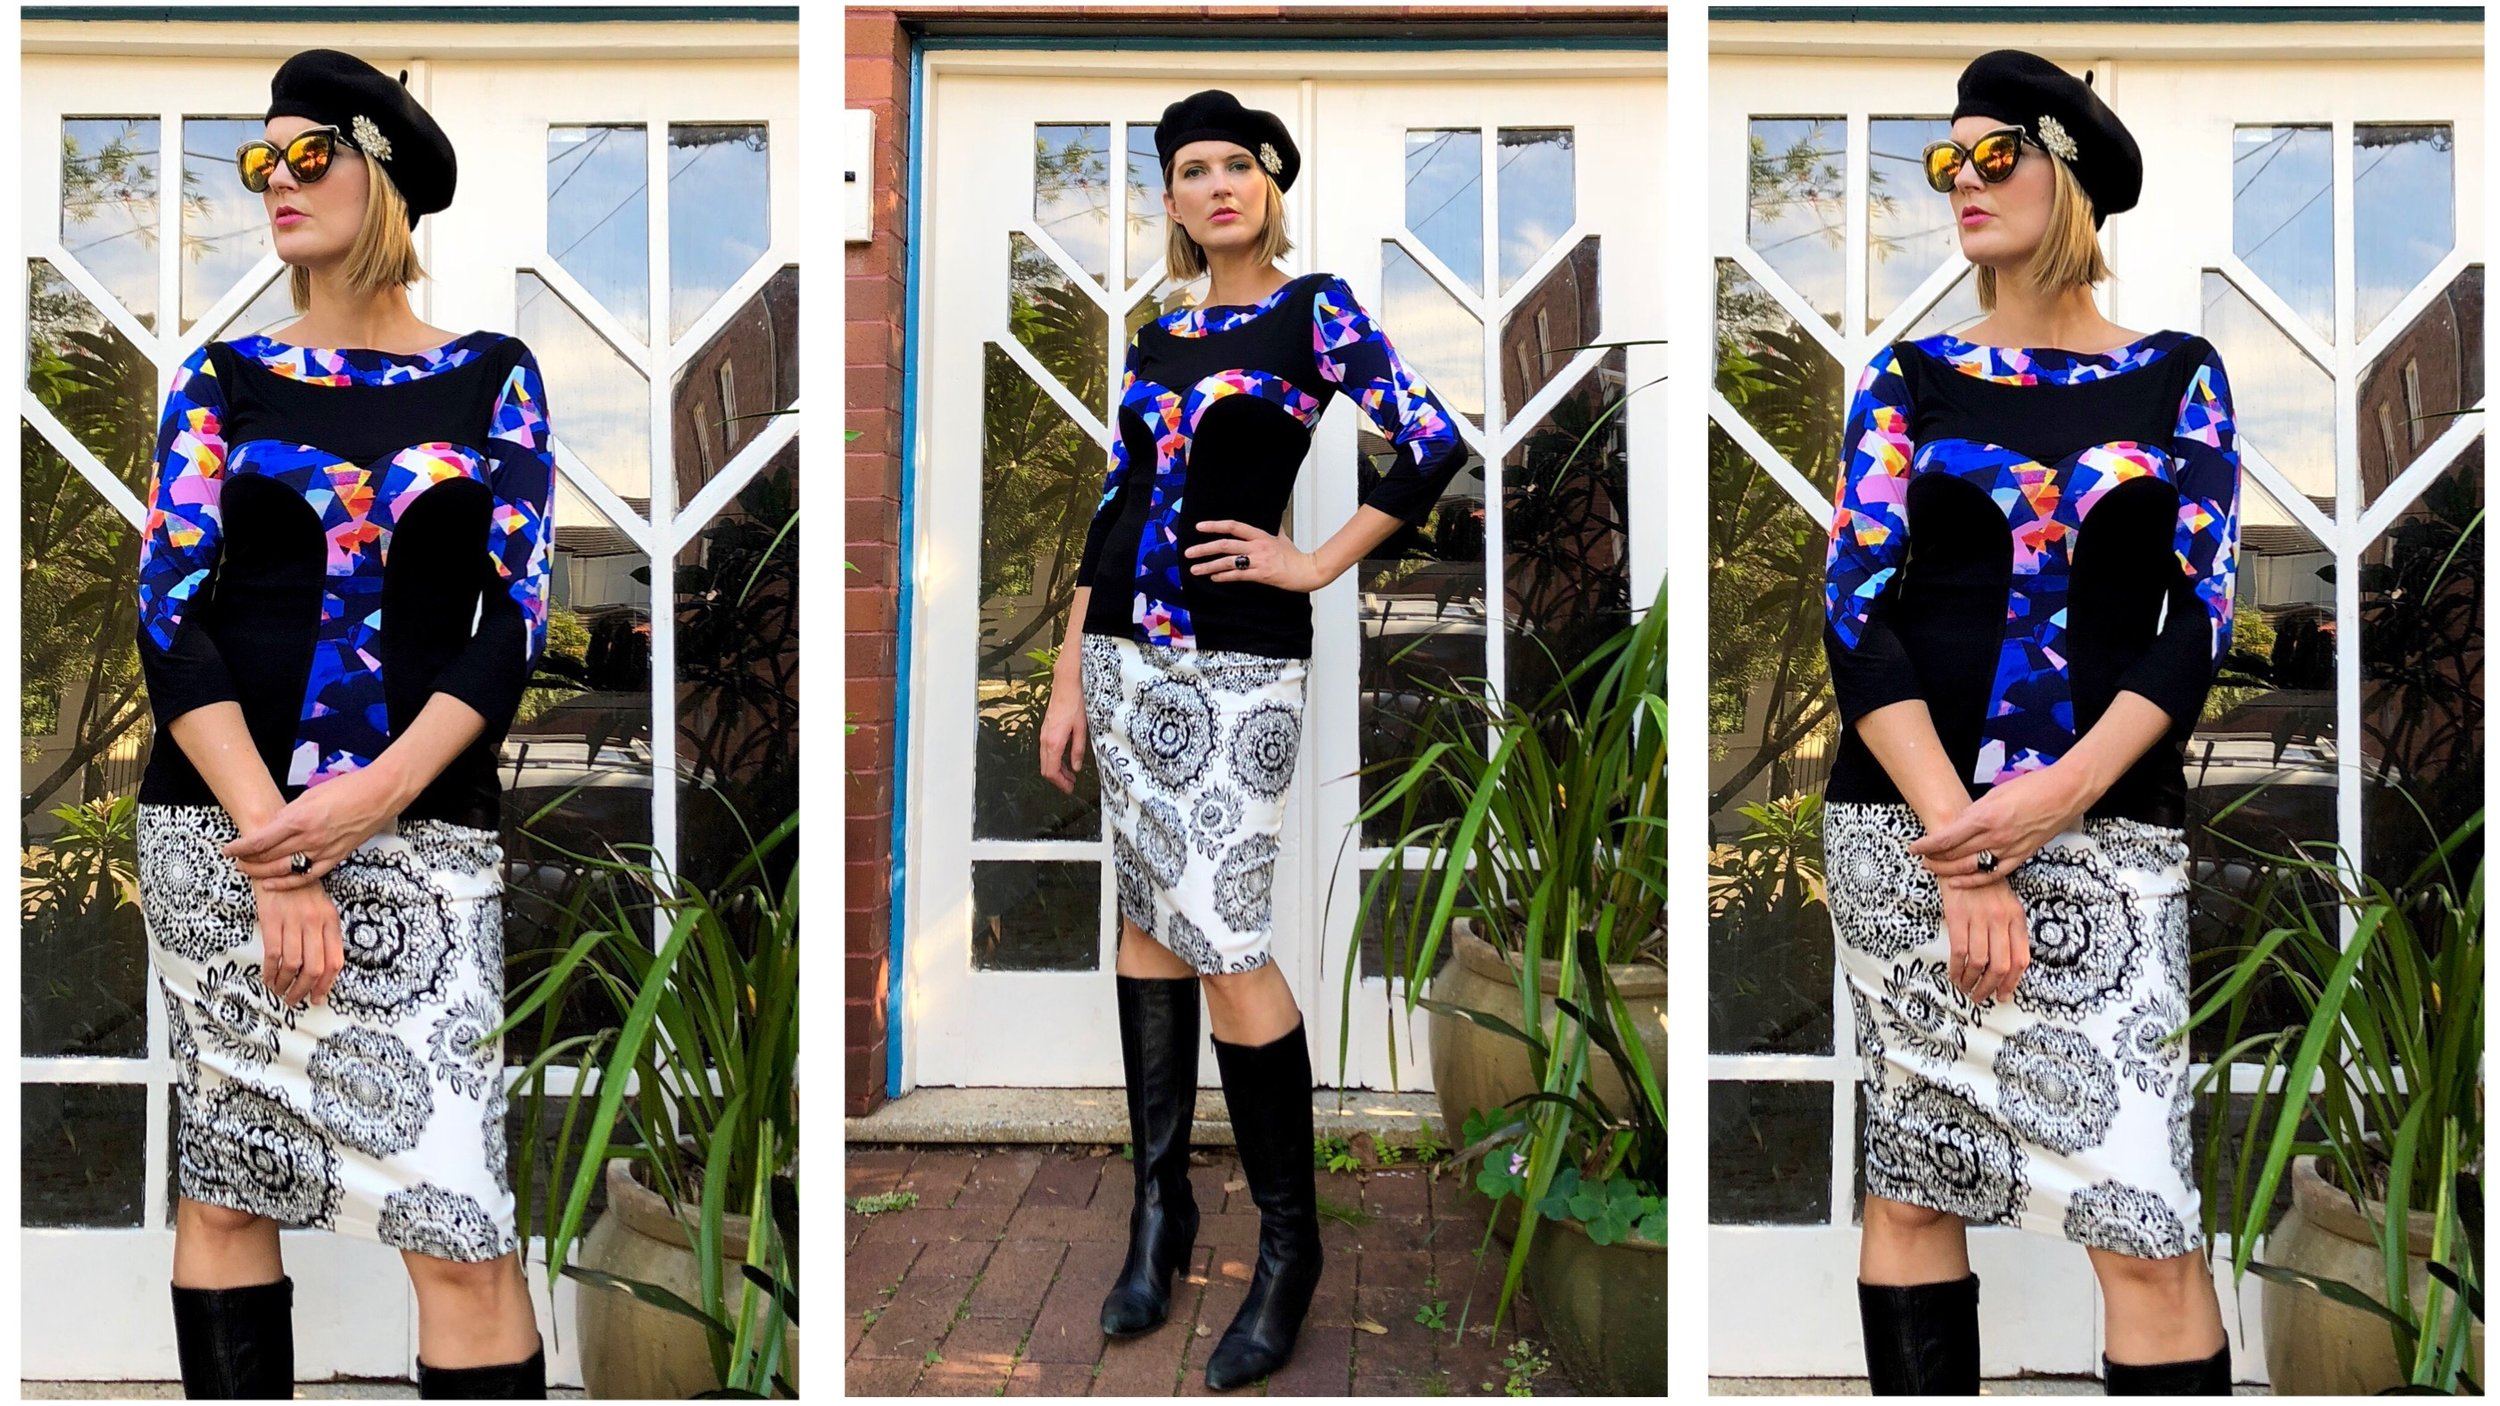 Blue Mosaic and Black Graphic Knit Top ($140 AUD), worn together with the Black and White Pencil Skirt. The knit top and skirt are SOLD OUT at time of posting.